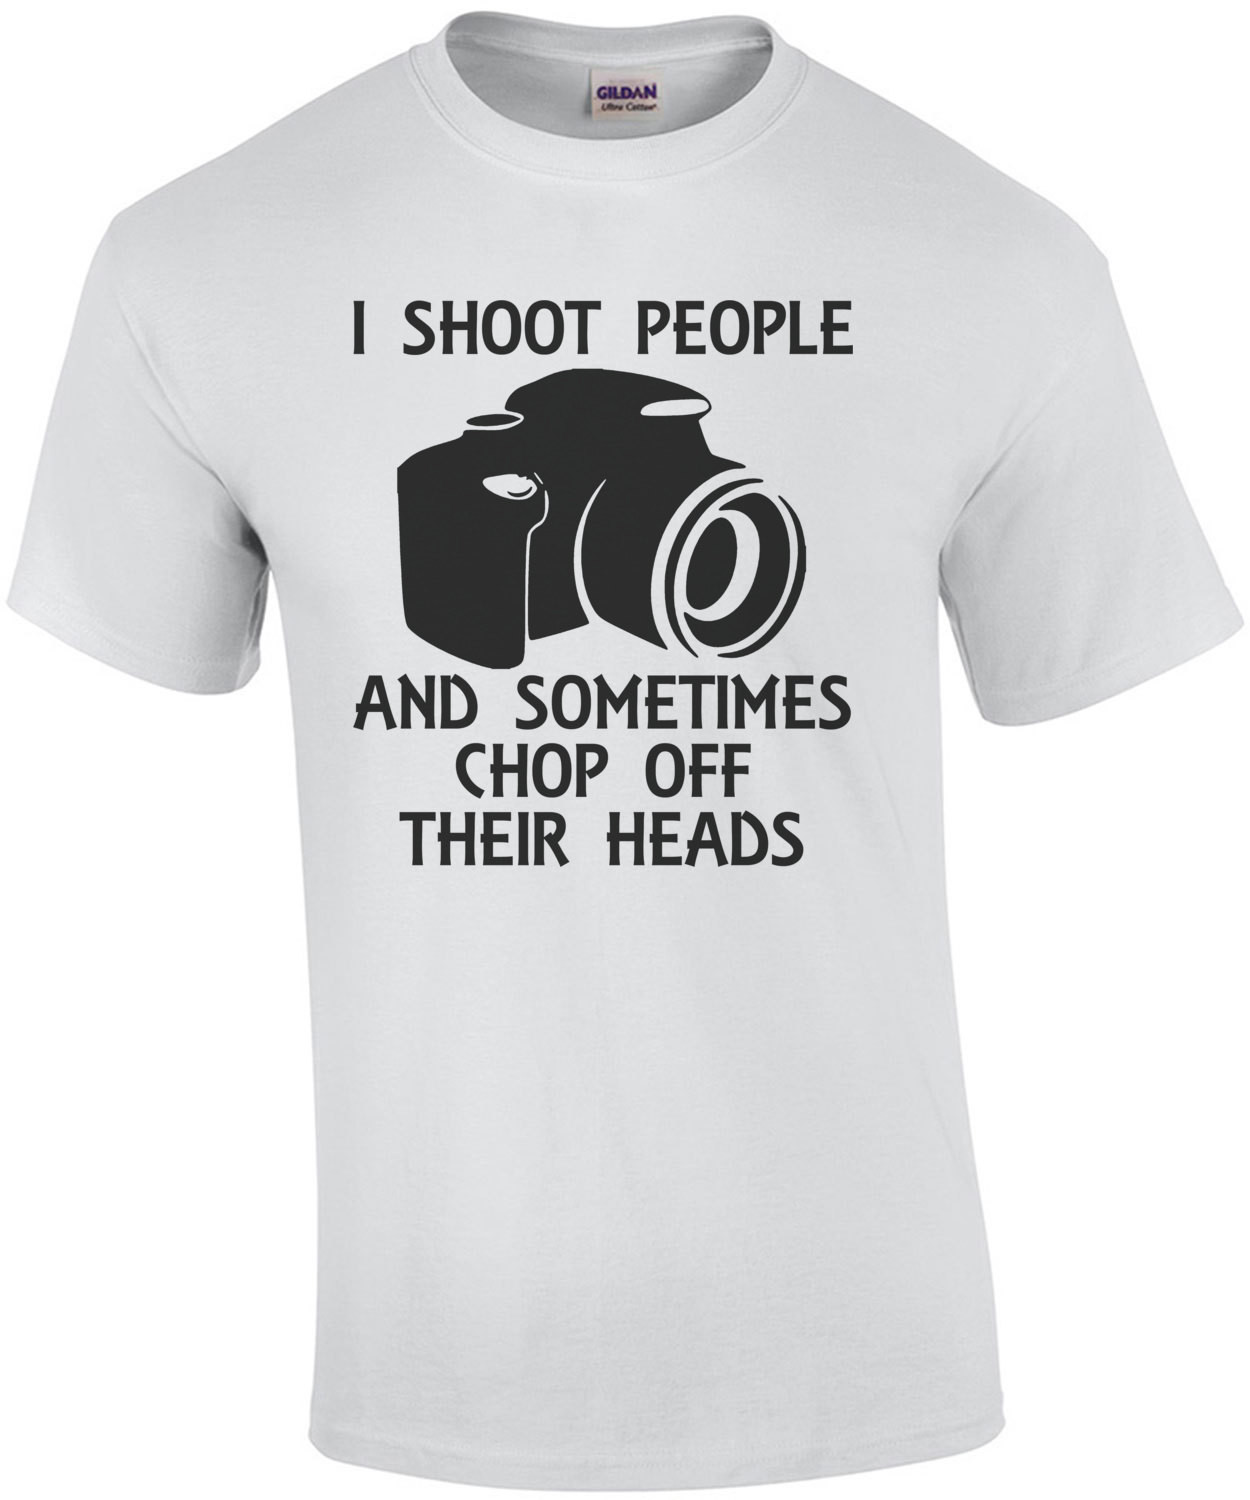 I Shoot People And Sometimes Chop Off Their Heads T-Shirt